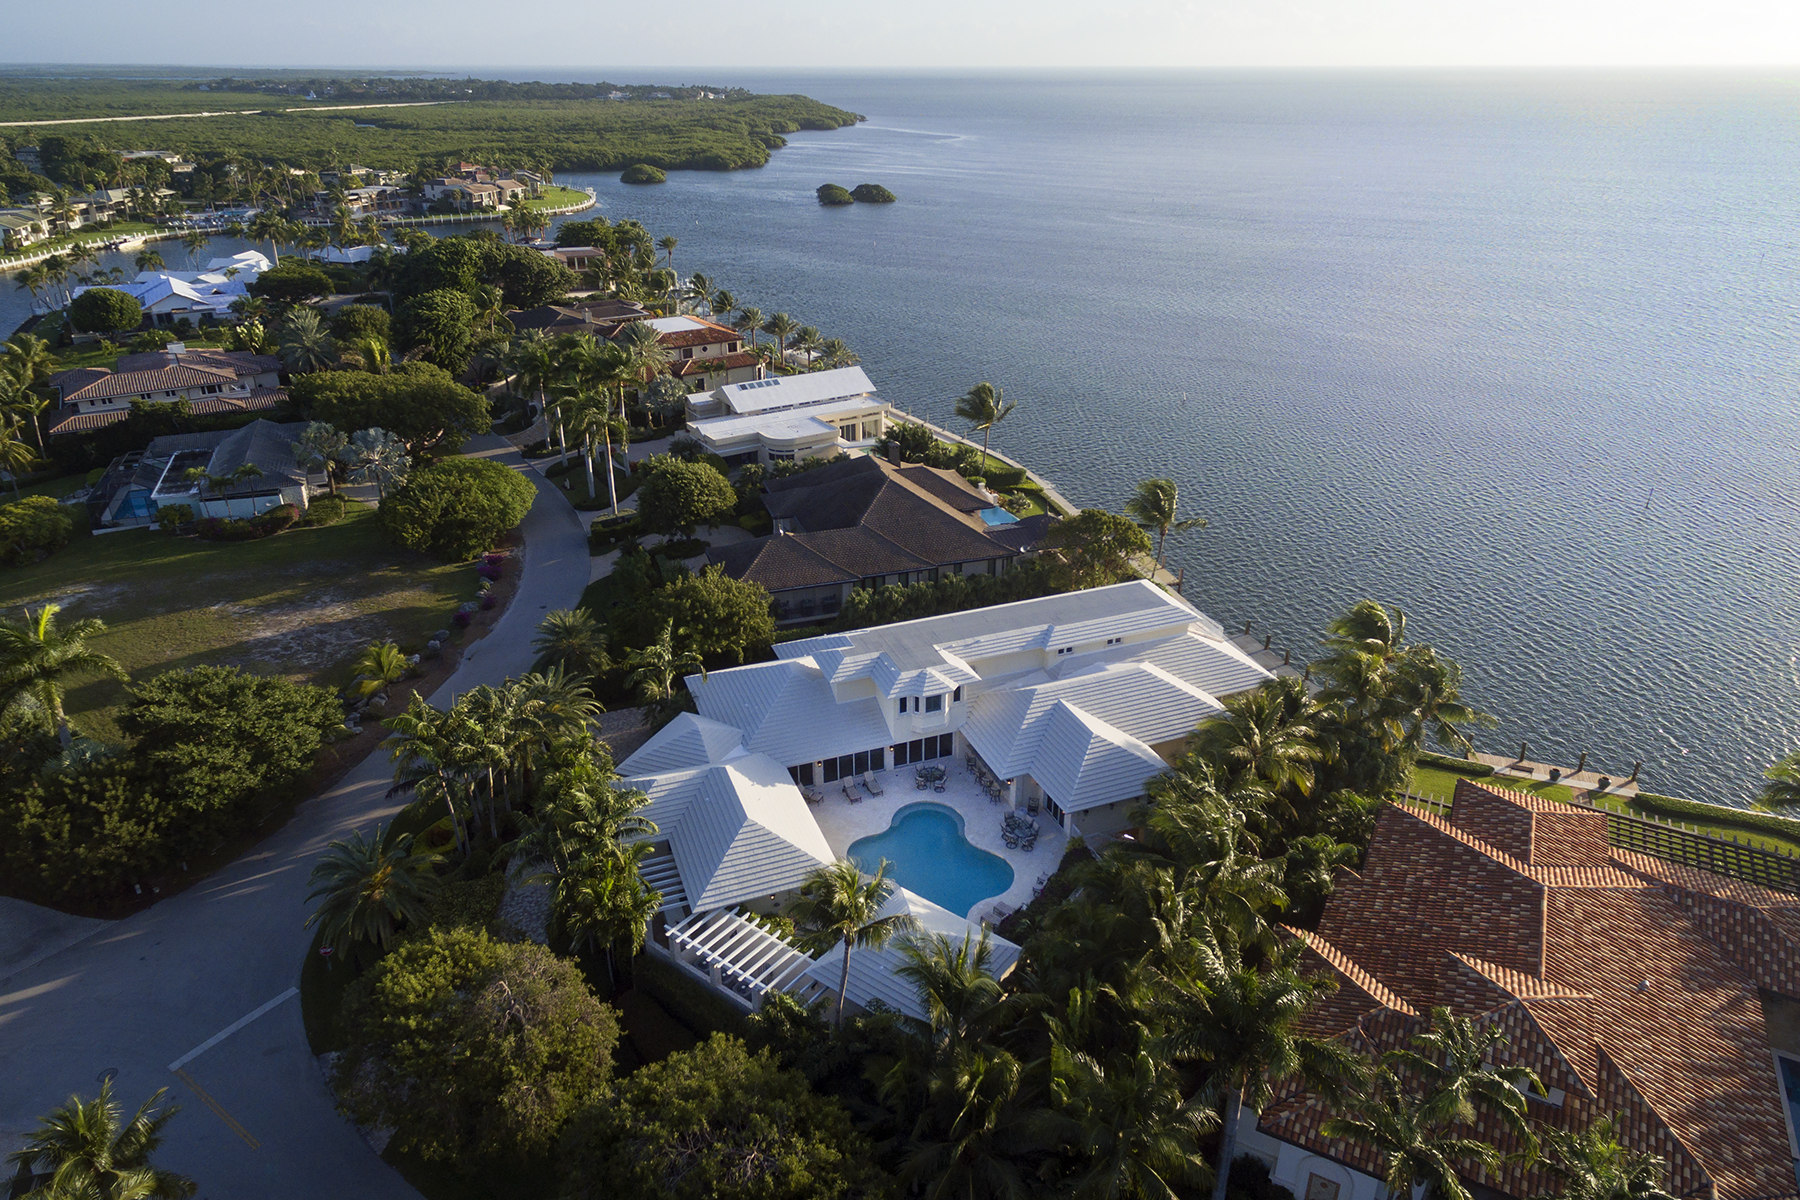 Villa per Vendita alle ore Extraordinary Oceanfront Home at Ocean Reef 24 Angelfish Cay Drive Ocean Reef Community, Key Largo, Florida, 33037 Stati Uniti